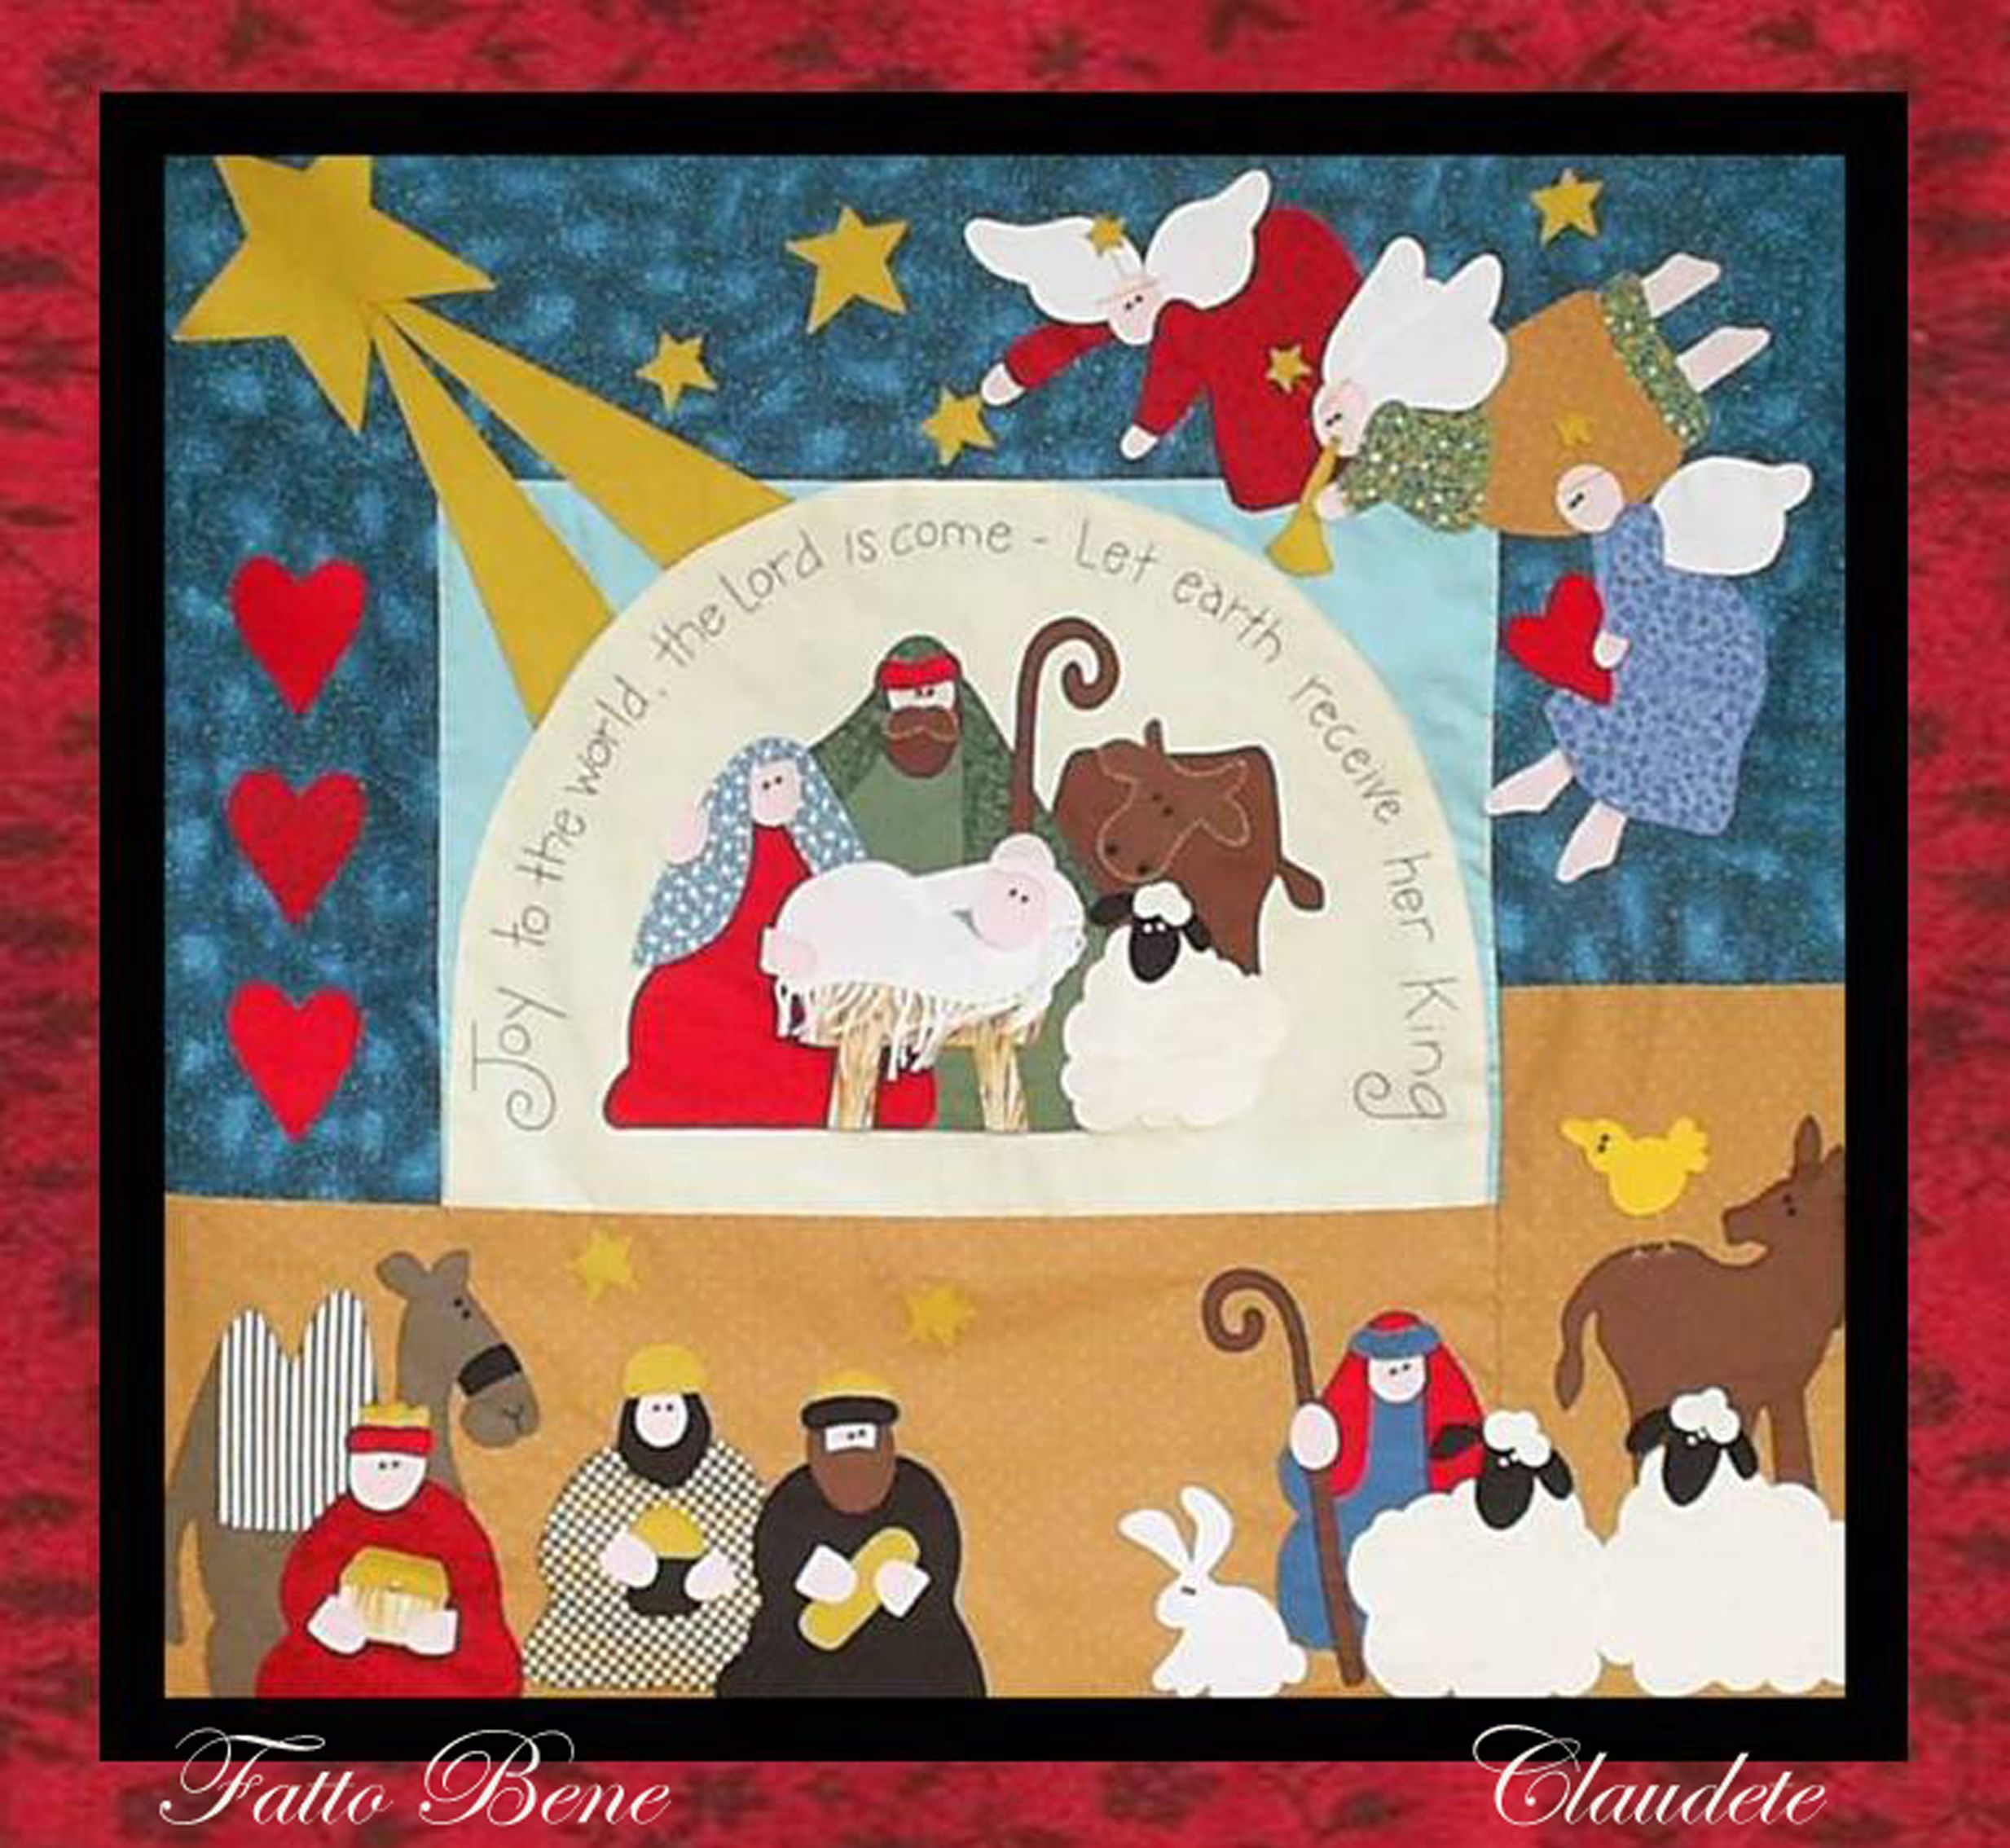 Joy to the world art to heart navidad y patrones - Patchwork en casa navidad patrones ...